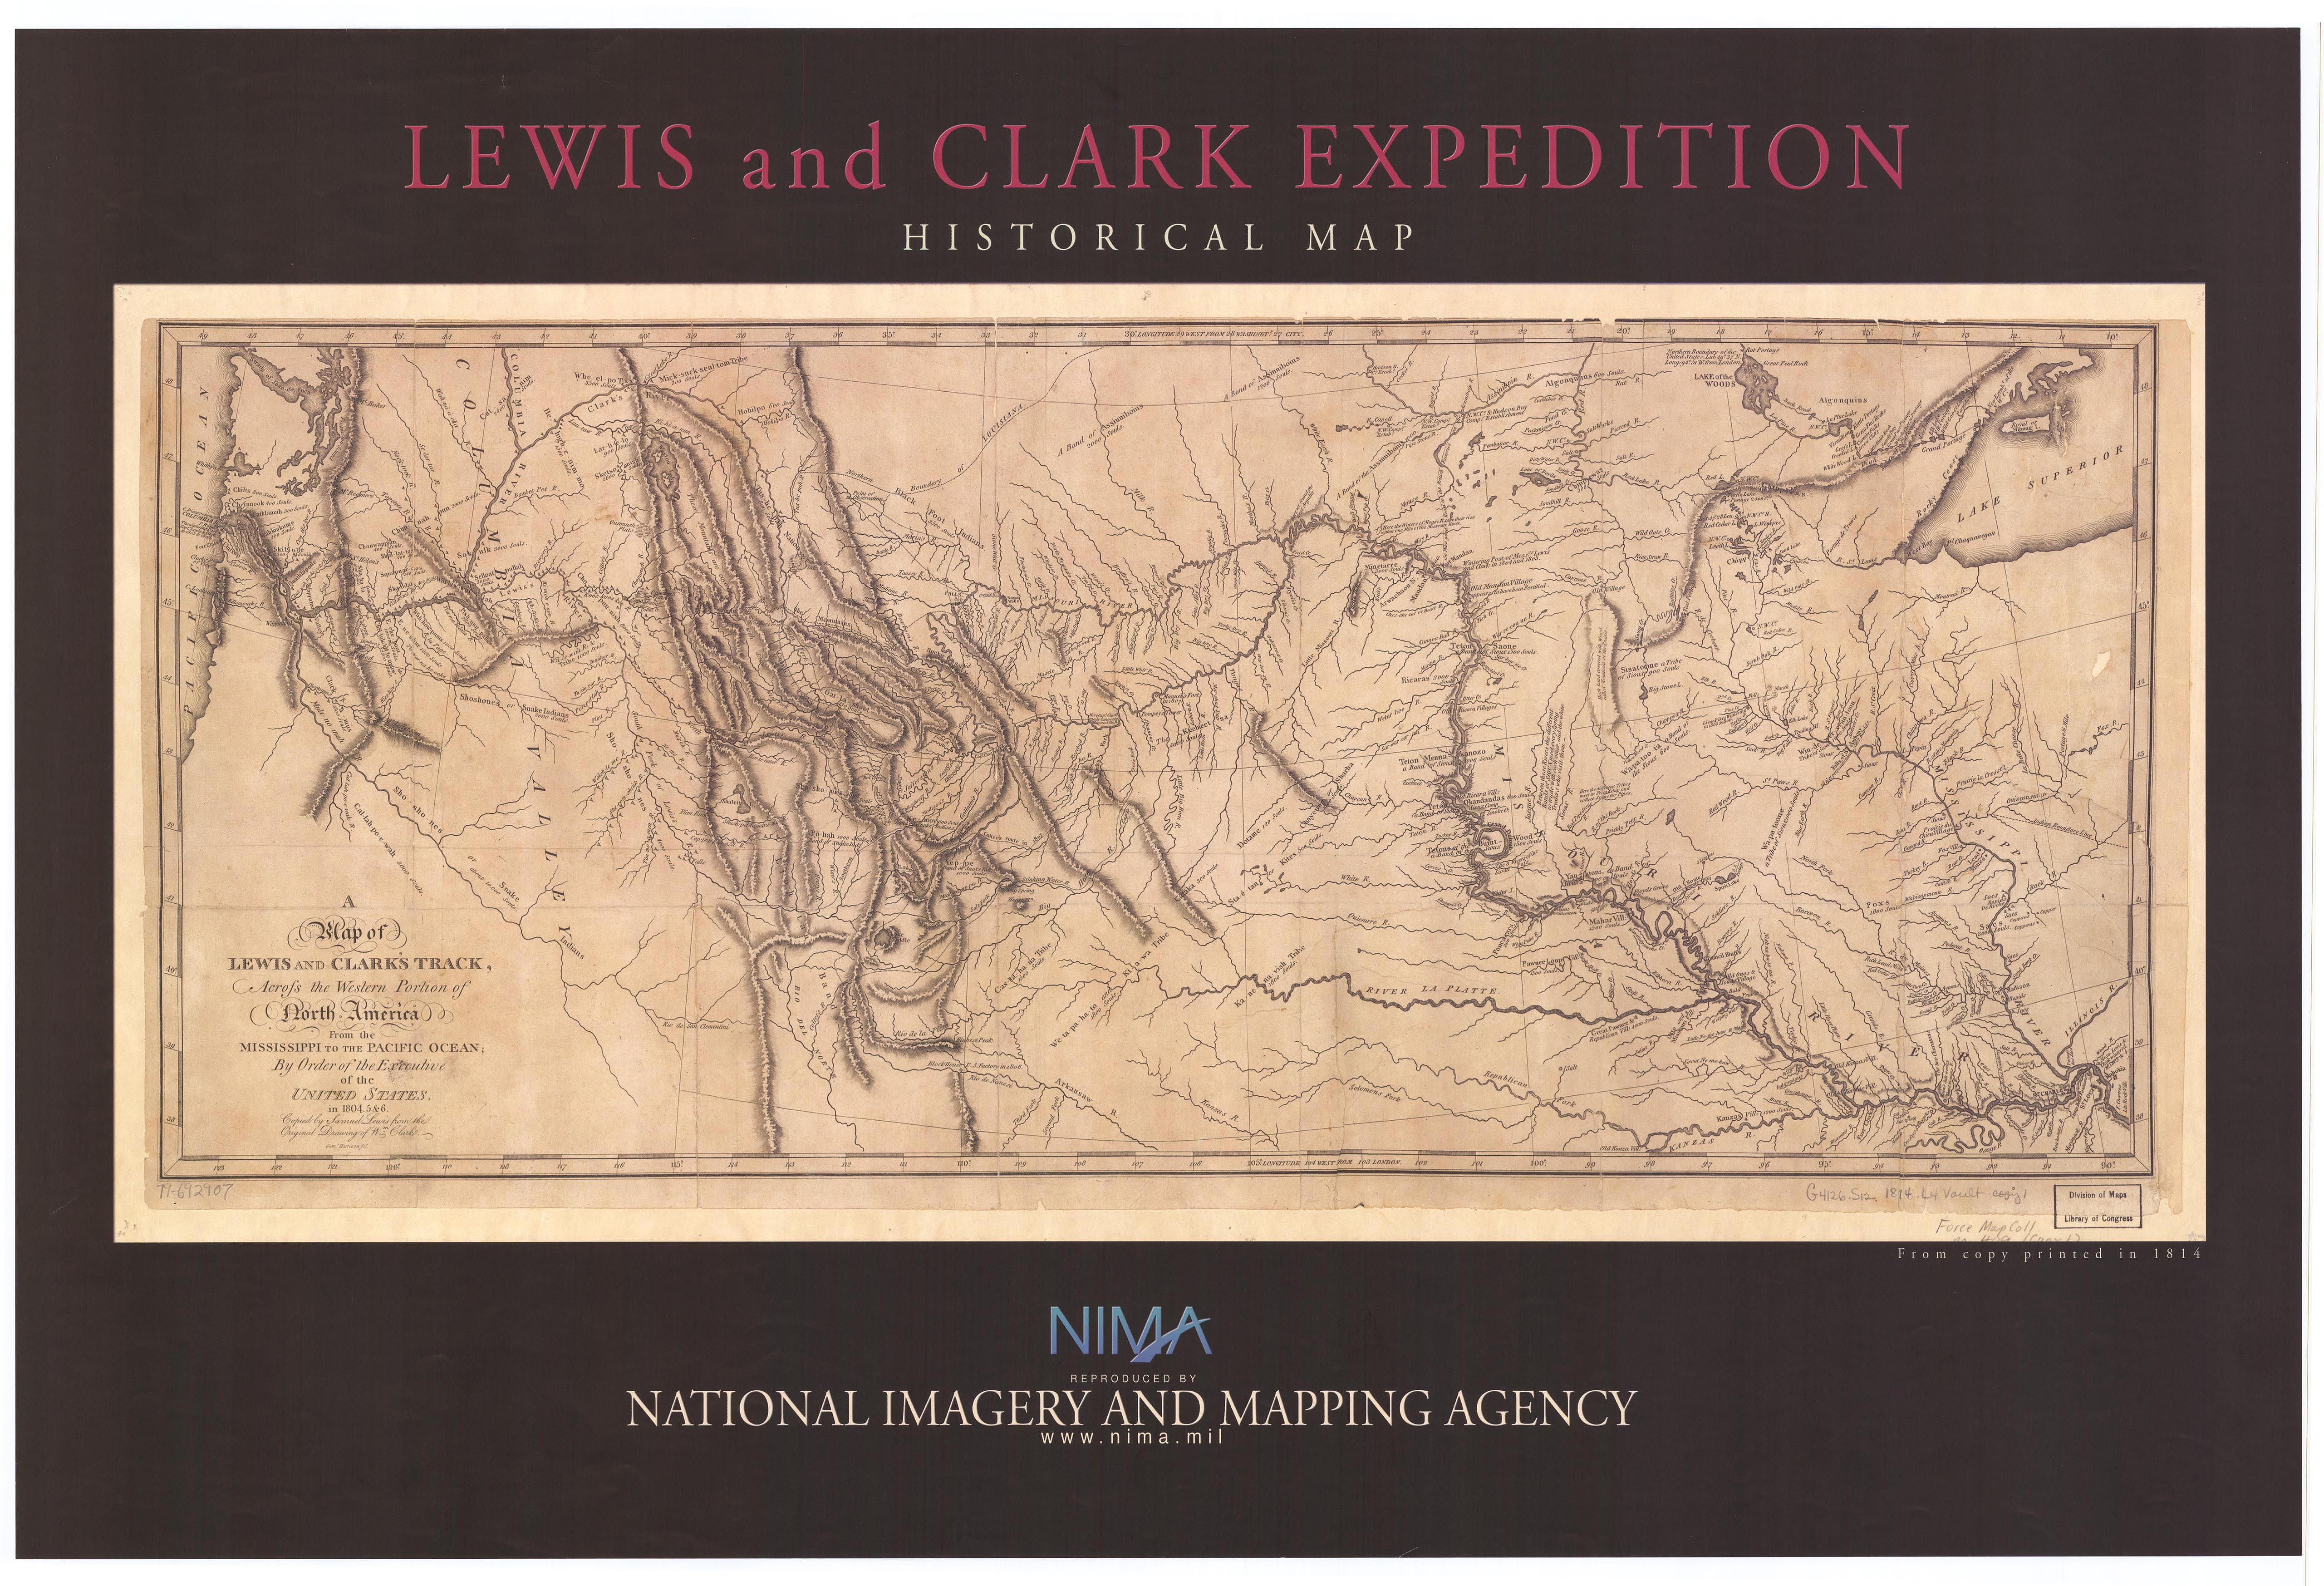 A lewis and clarks expedition journal entry